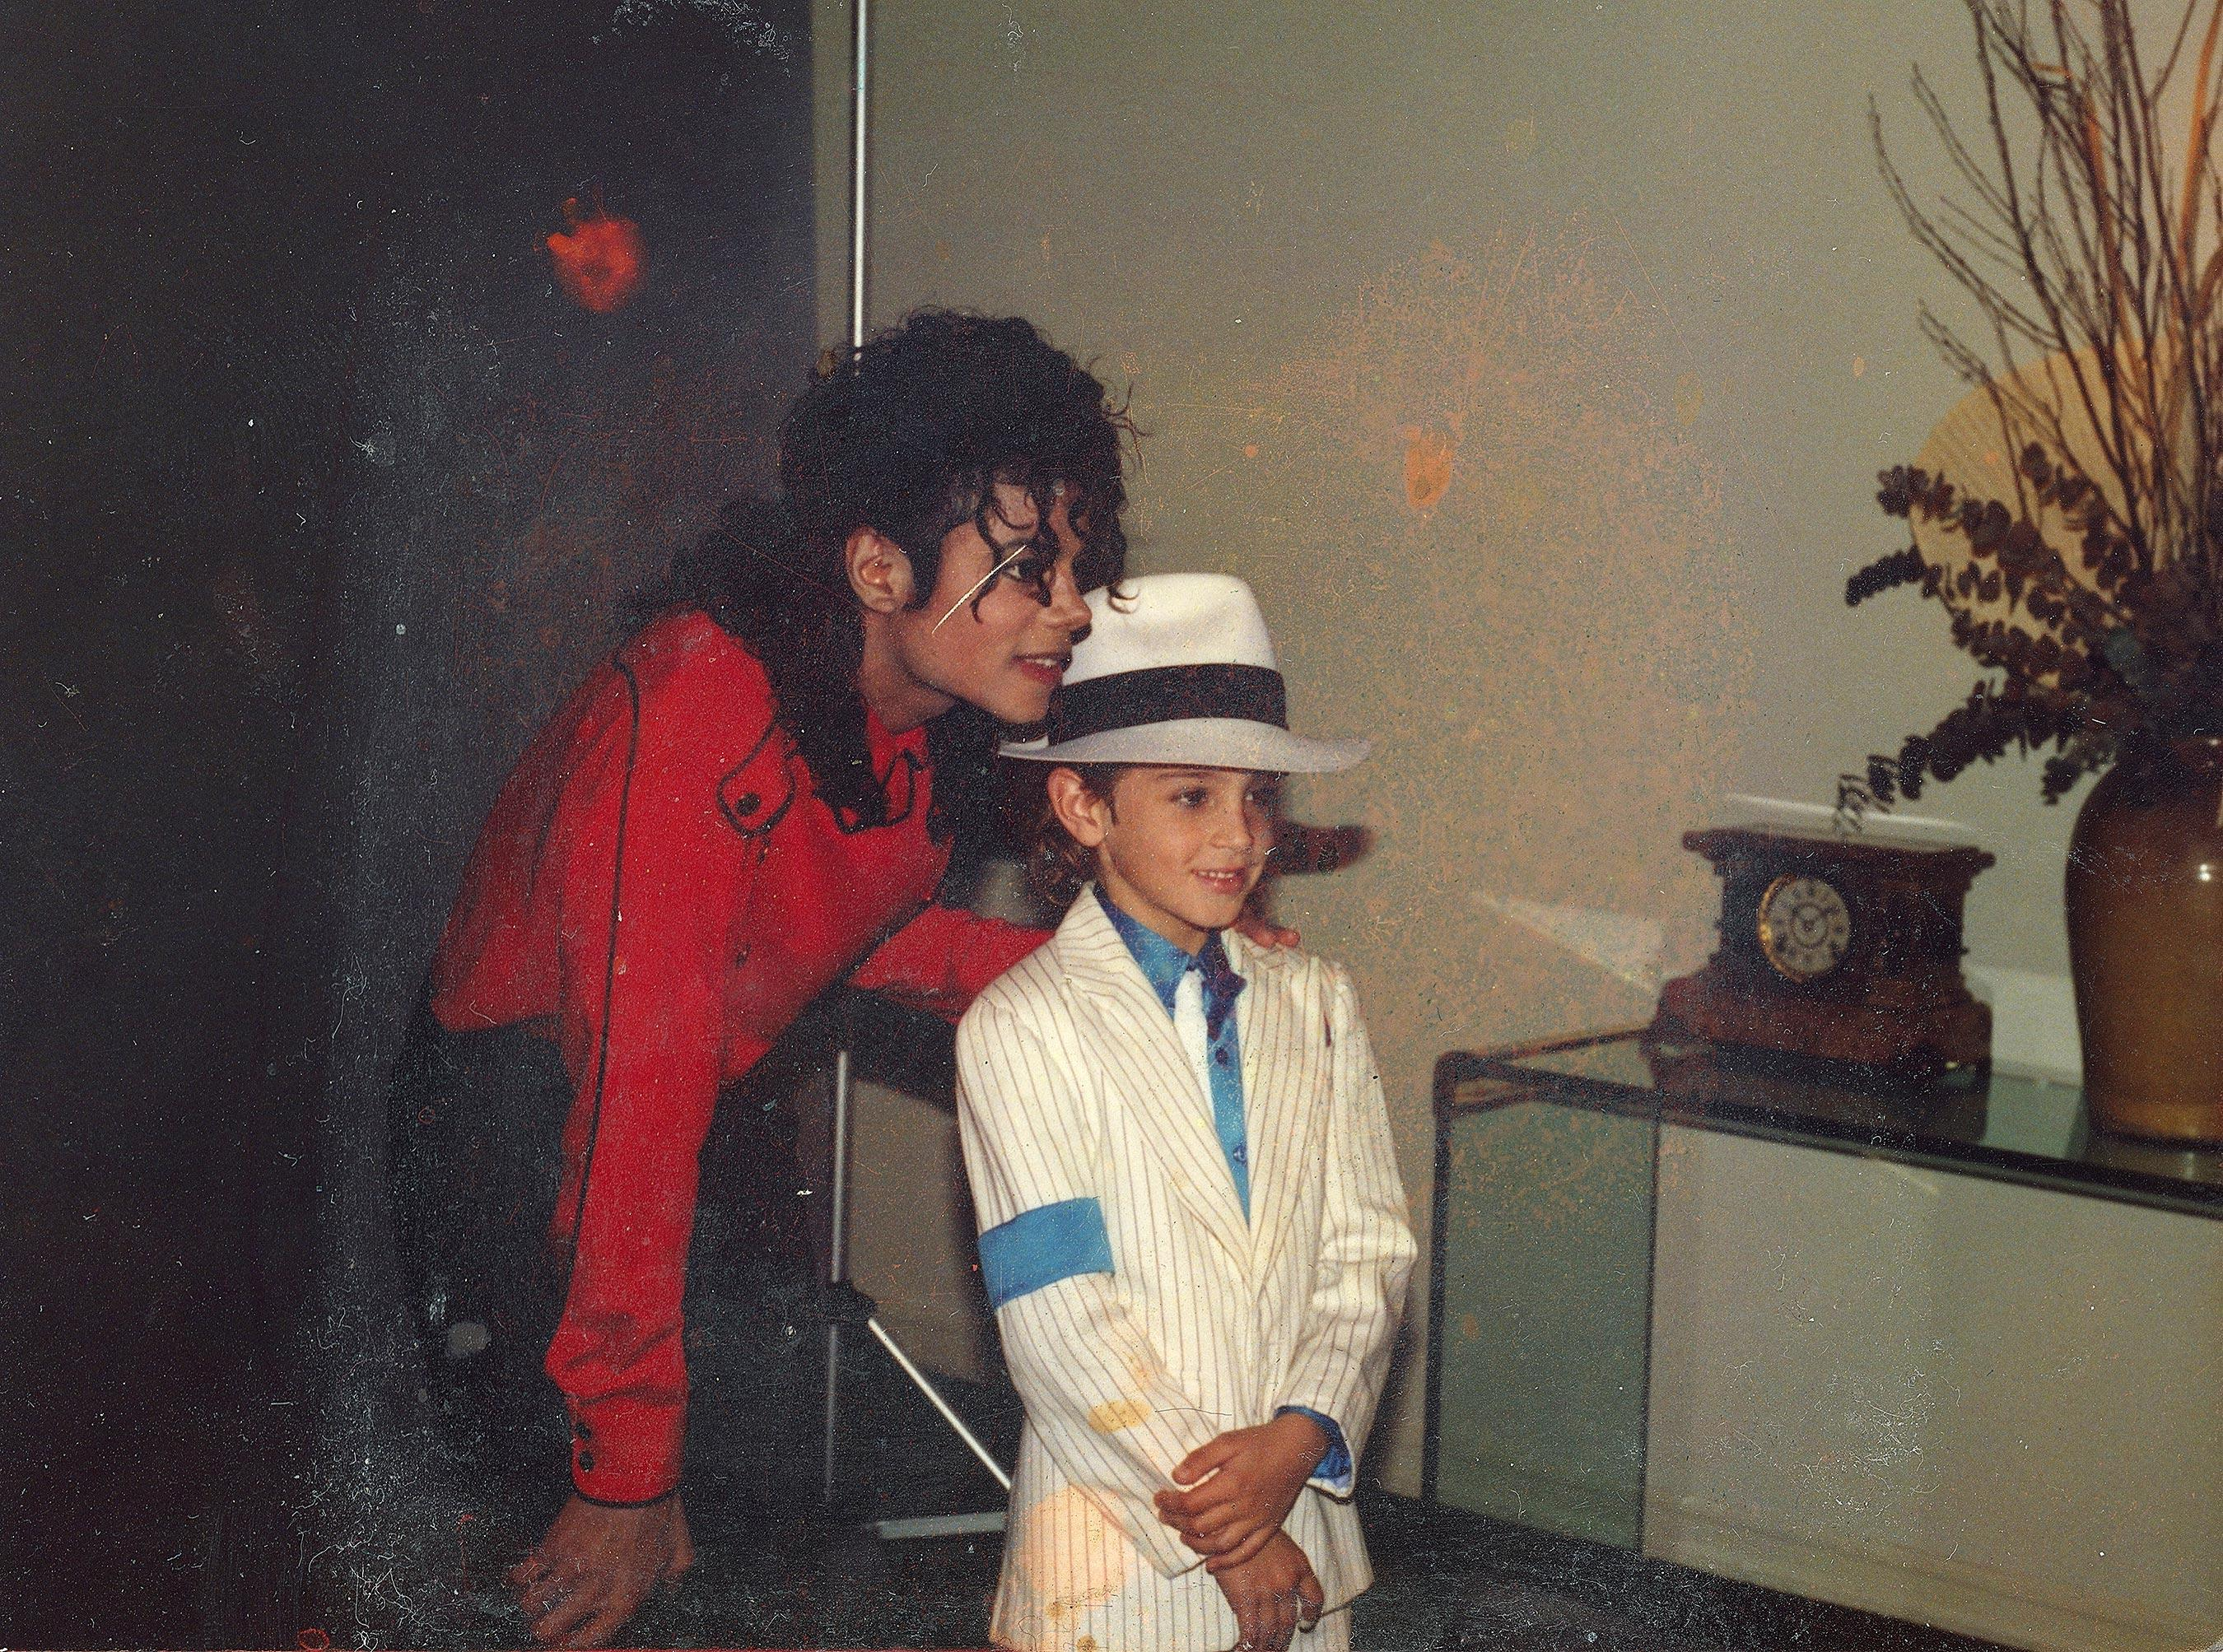 bdb409c2245f05 Wade Robson Speaks Out on Burning His Michael Jackson 'Thriller'-Style  Jacket in Leaving Neverland